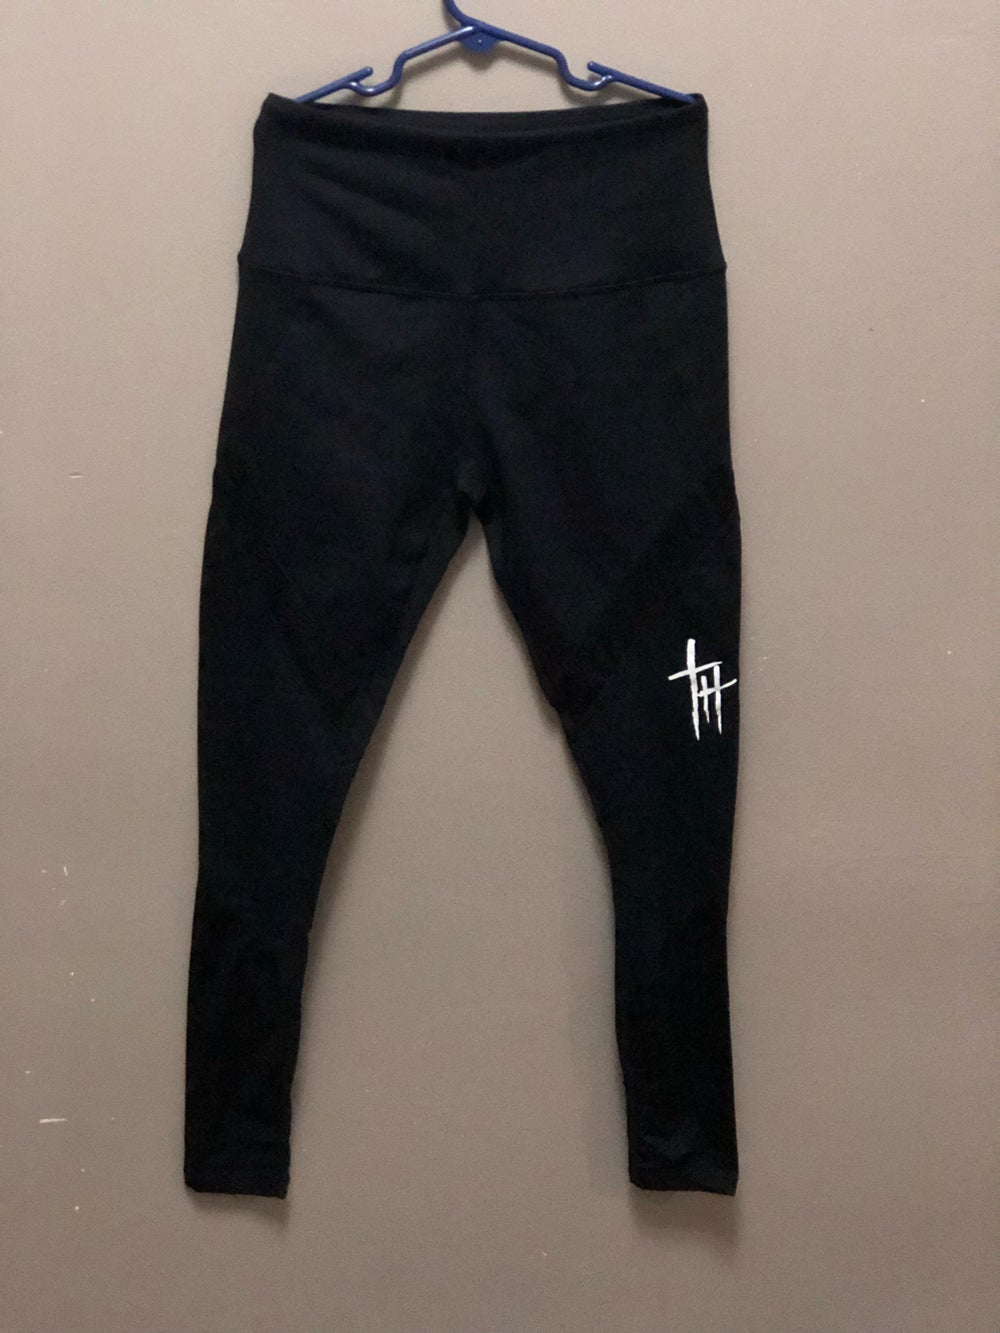 Image of Women's leggings- Black